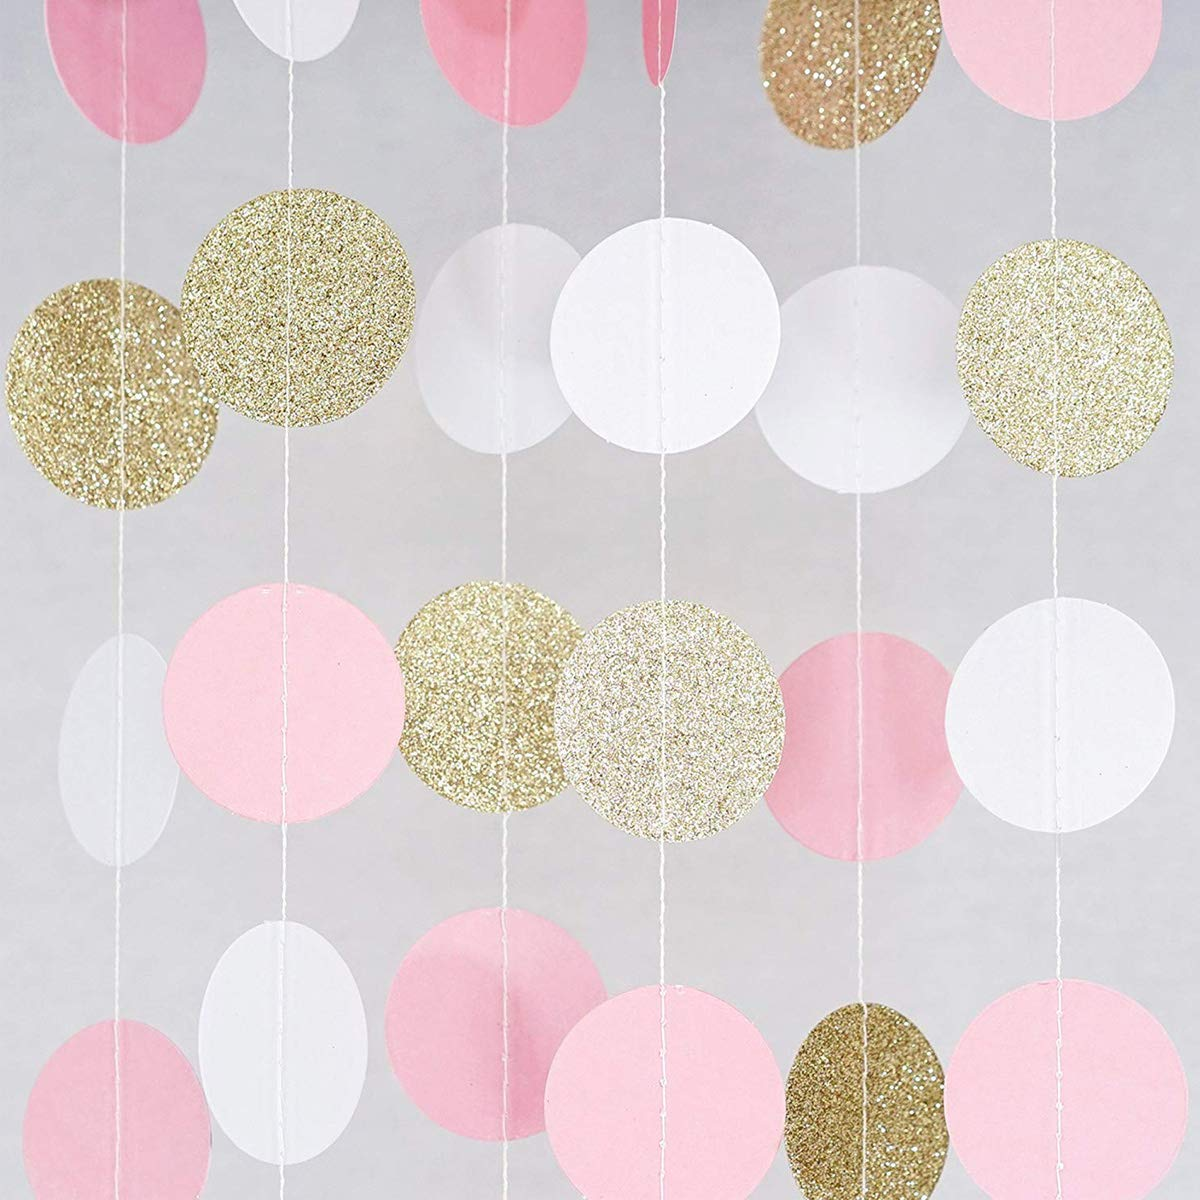 Eokeanon Paper Garland Paper Banner Circle Dots Hanging Decorations for Birthday Party Baby Shower Wedding Festival Decorations 5 Pack Glitter Paper Garland Circle Dots Hanging Decor